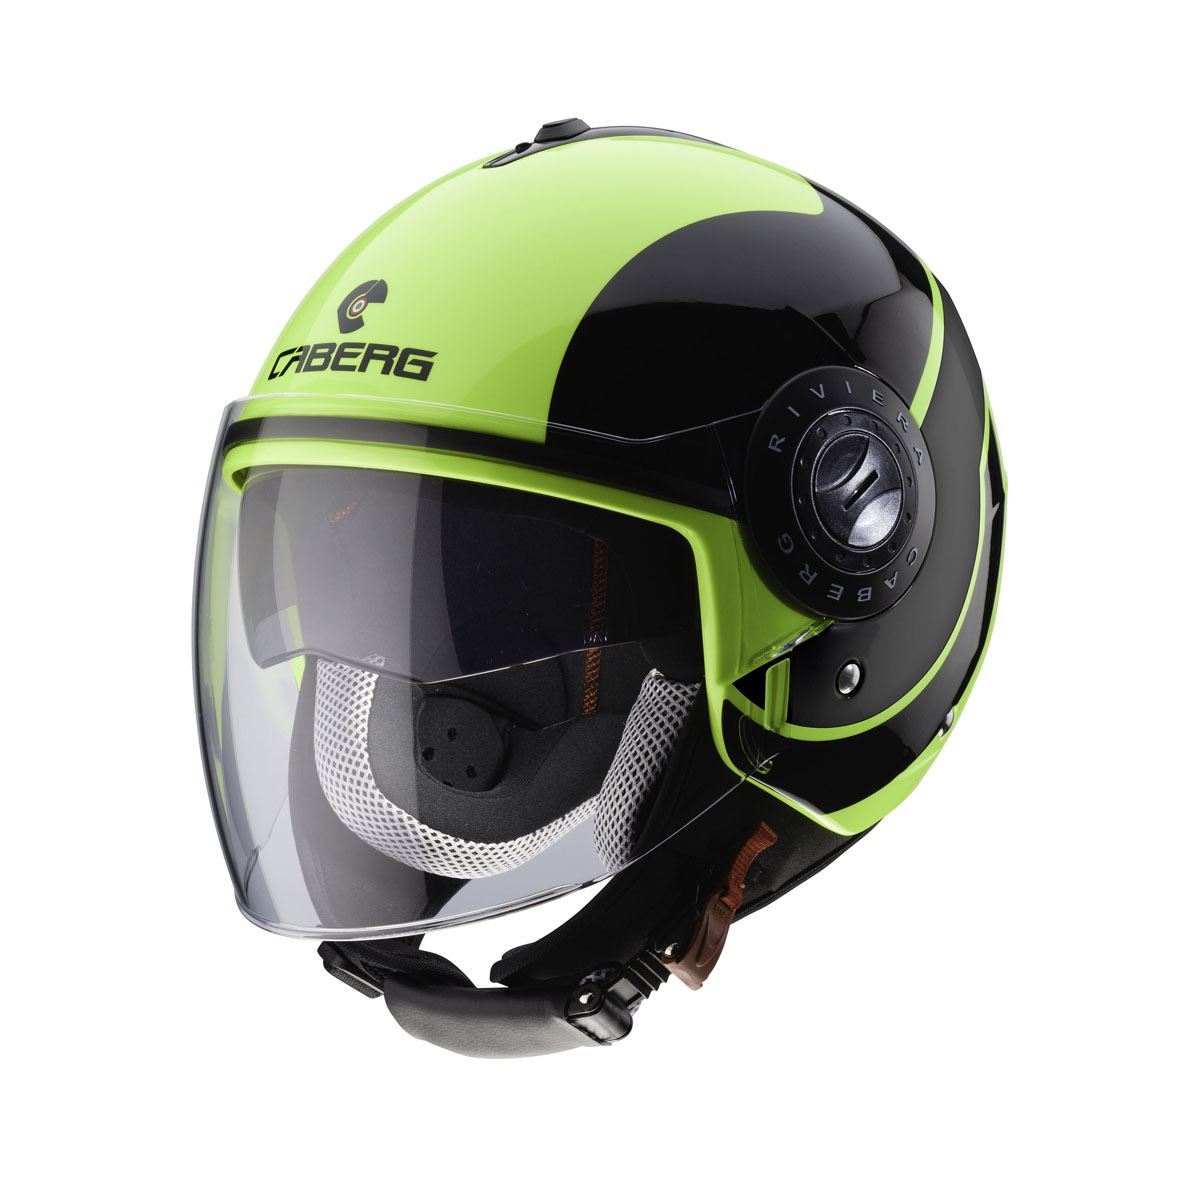 Caberg-Riviera-Open-Jet-Face-Motorcycle-Scooter-Ventilated-Helmet thumbnail 4